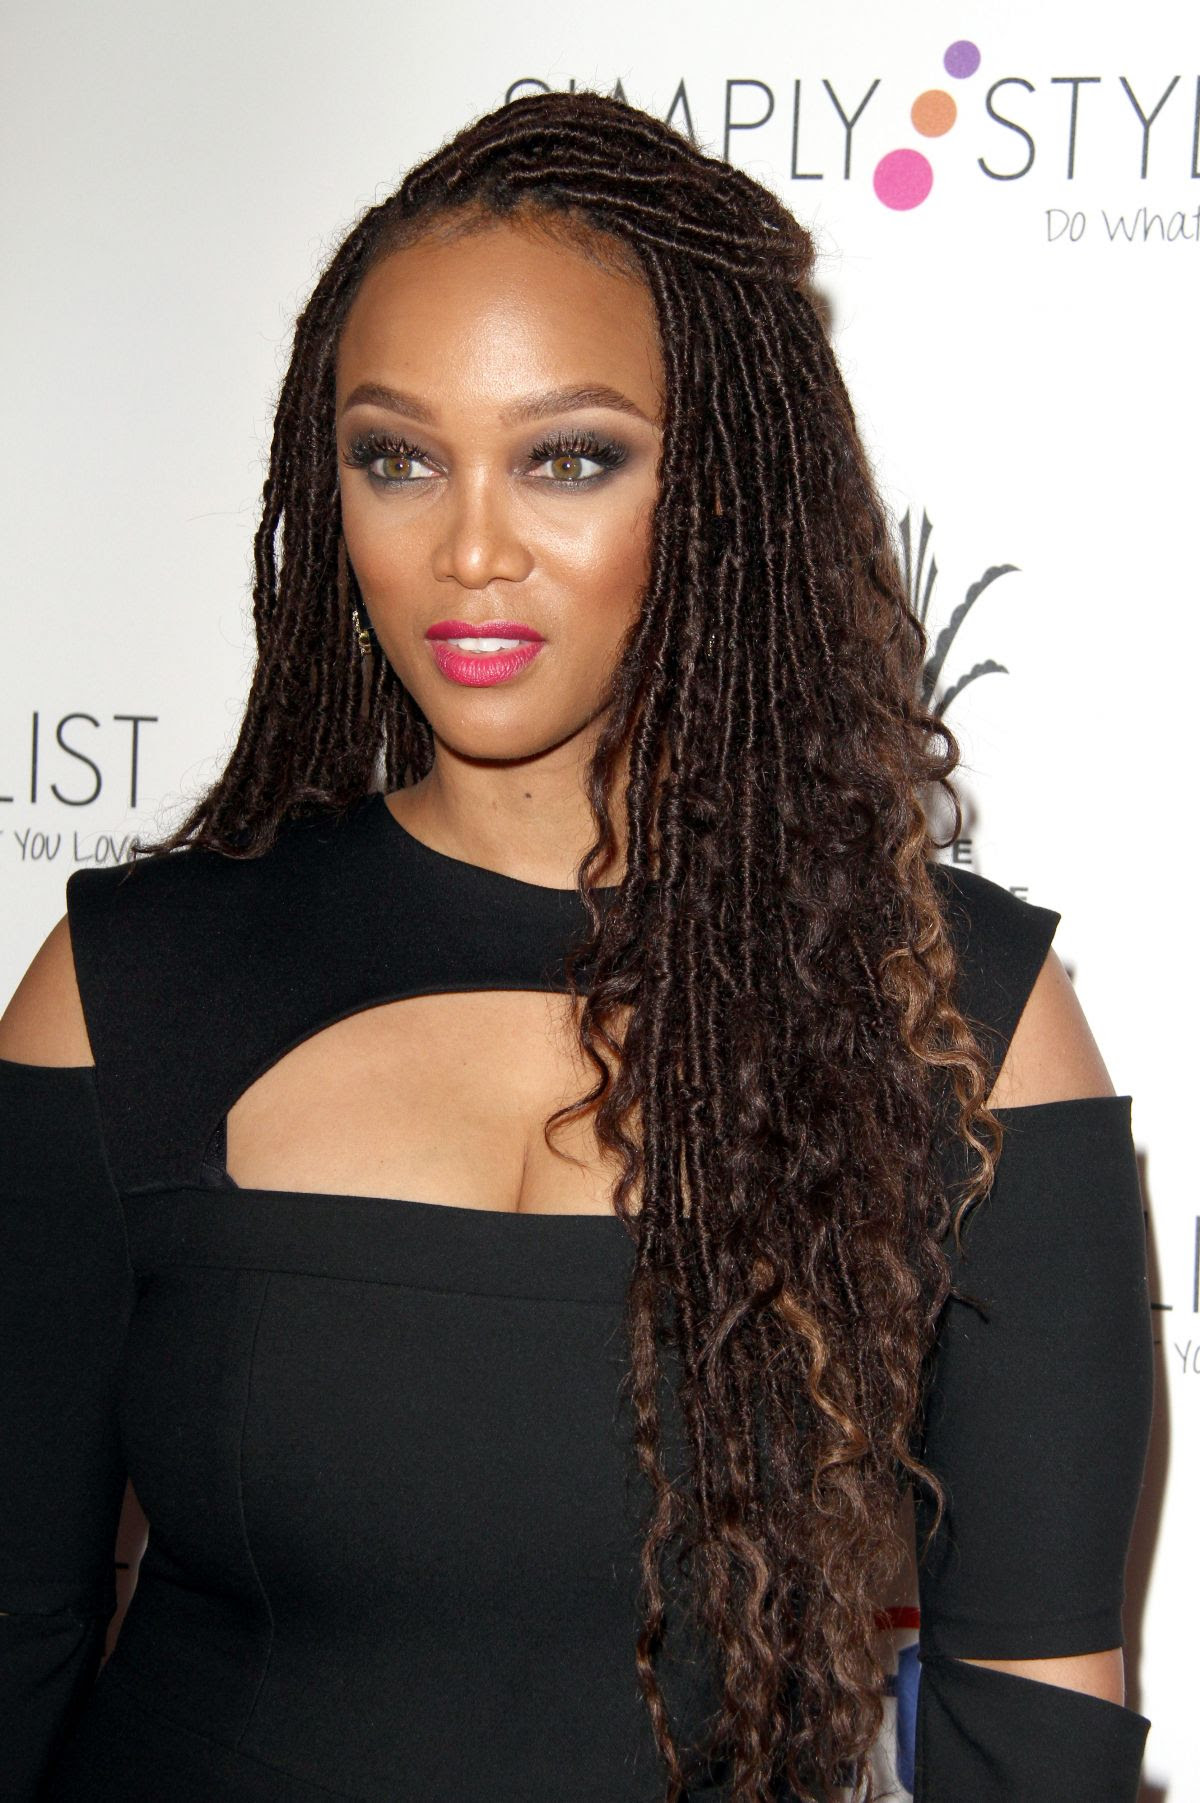 TYRA BANKS at Do What You Love Fashion and Beauty Conference in Los Angeles 03/19/2016